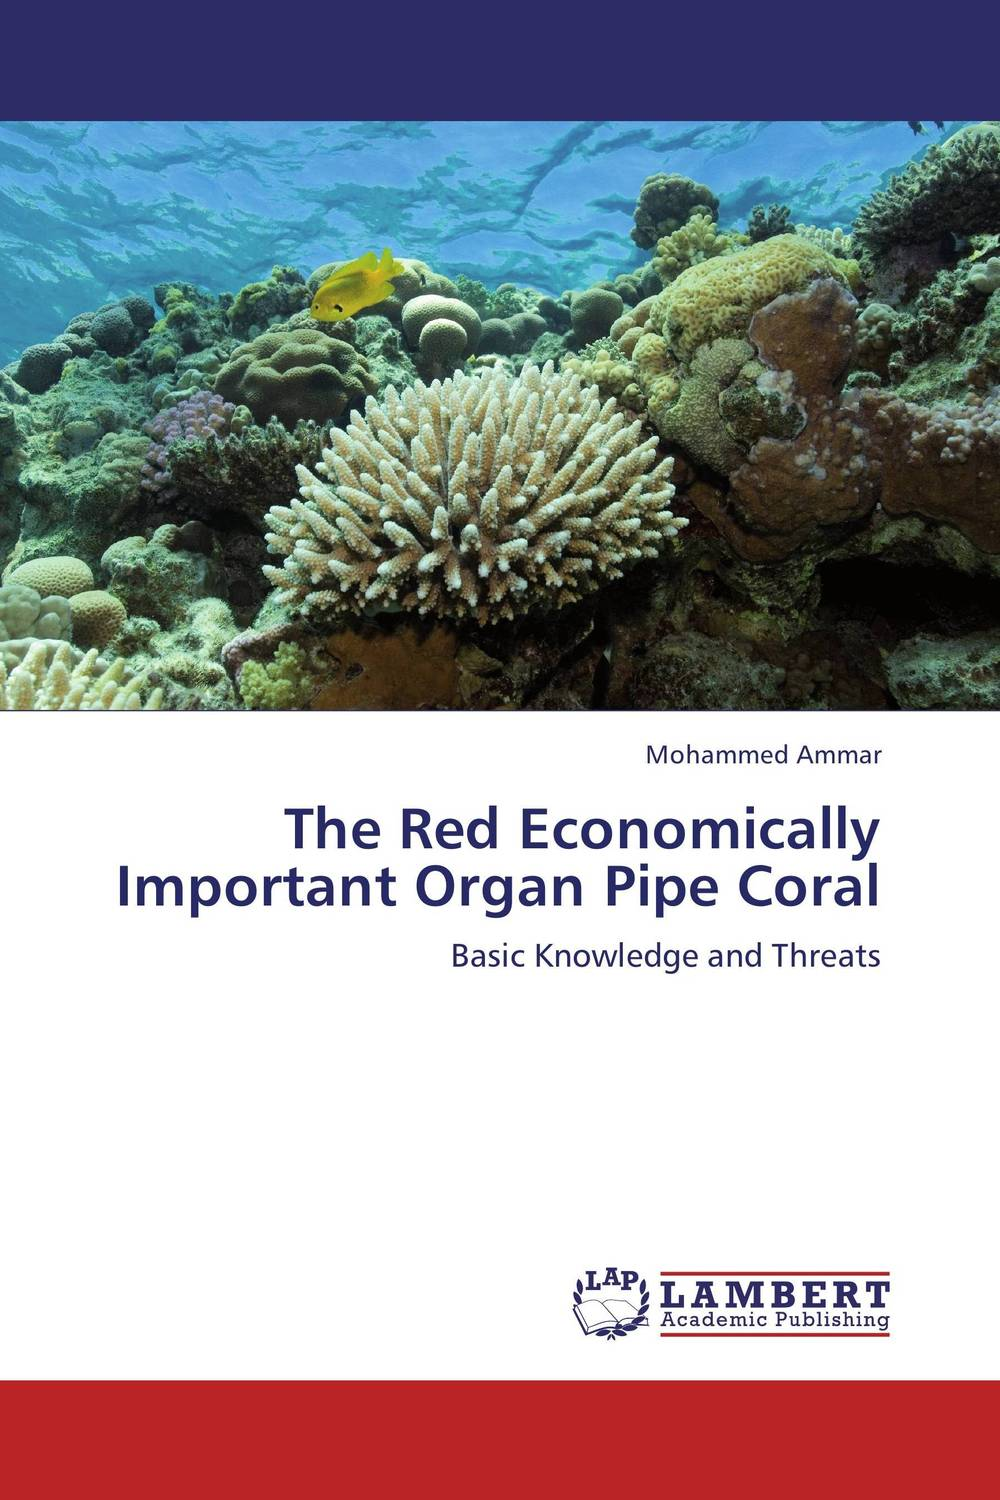 The Red Economically Important Organ Pipe Coral coral health and disease in the red sea egypt